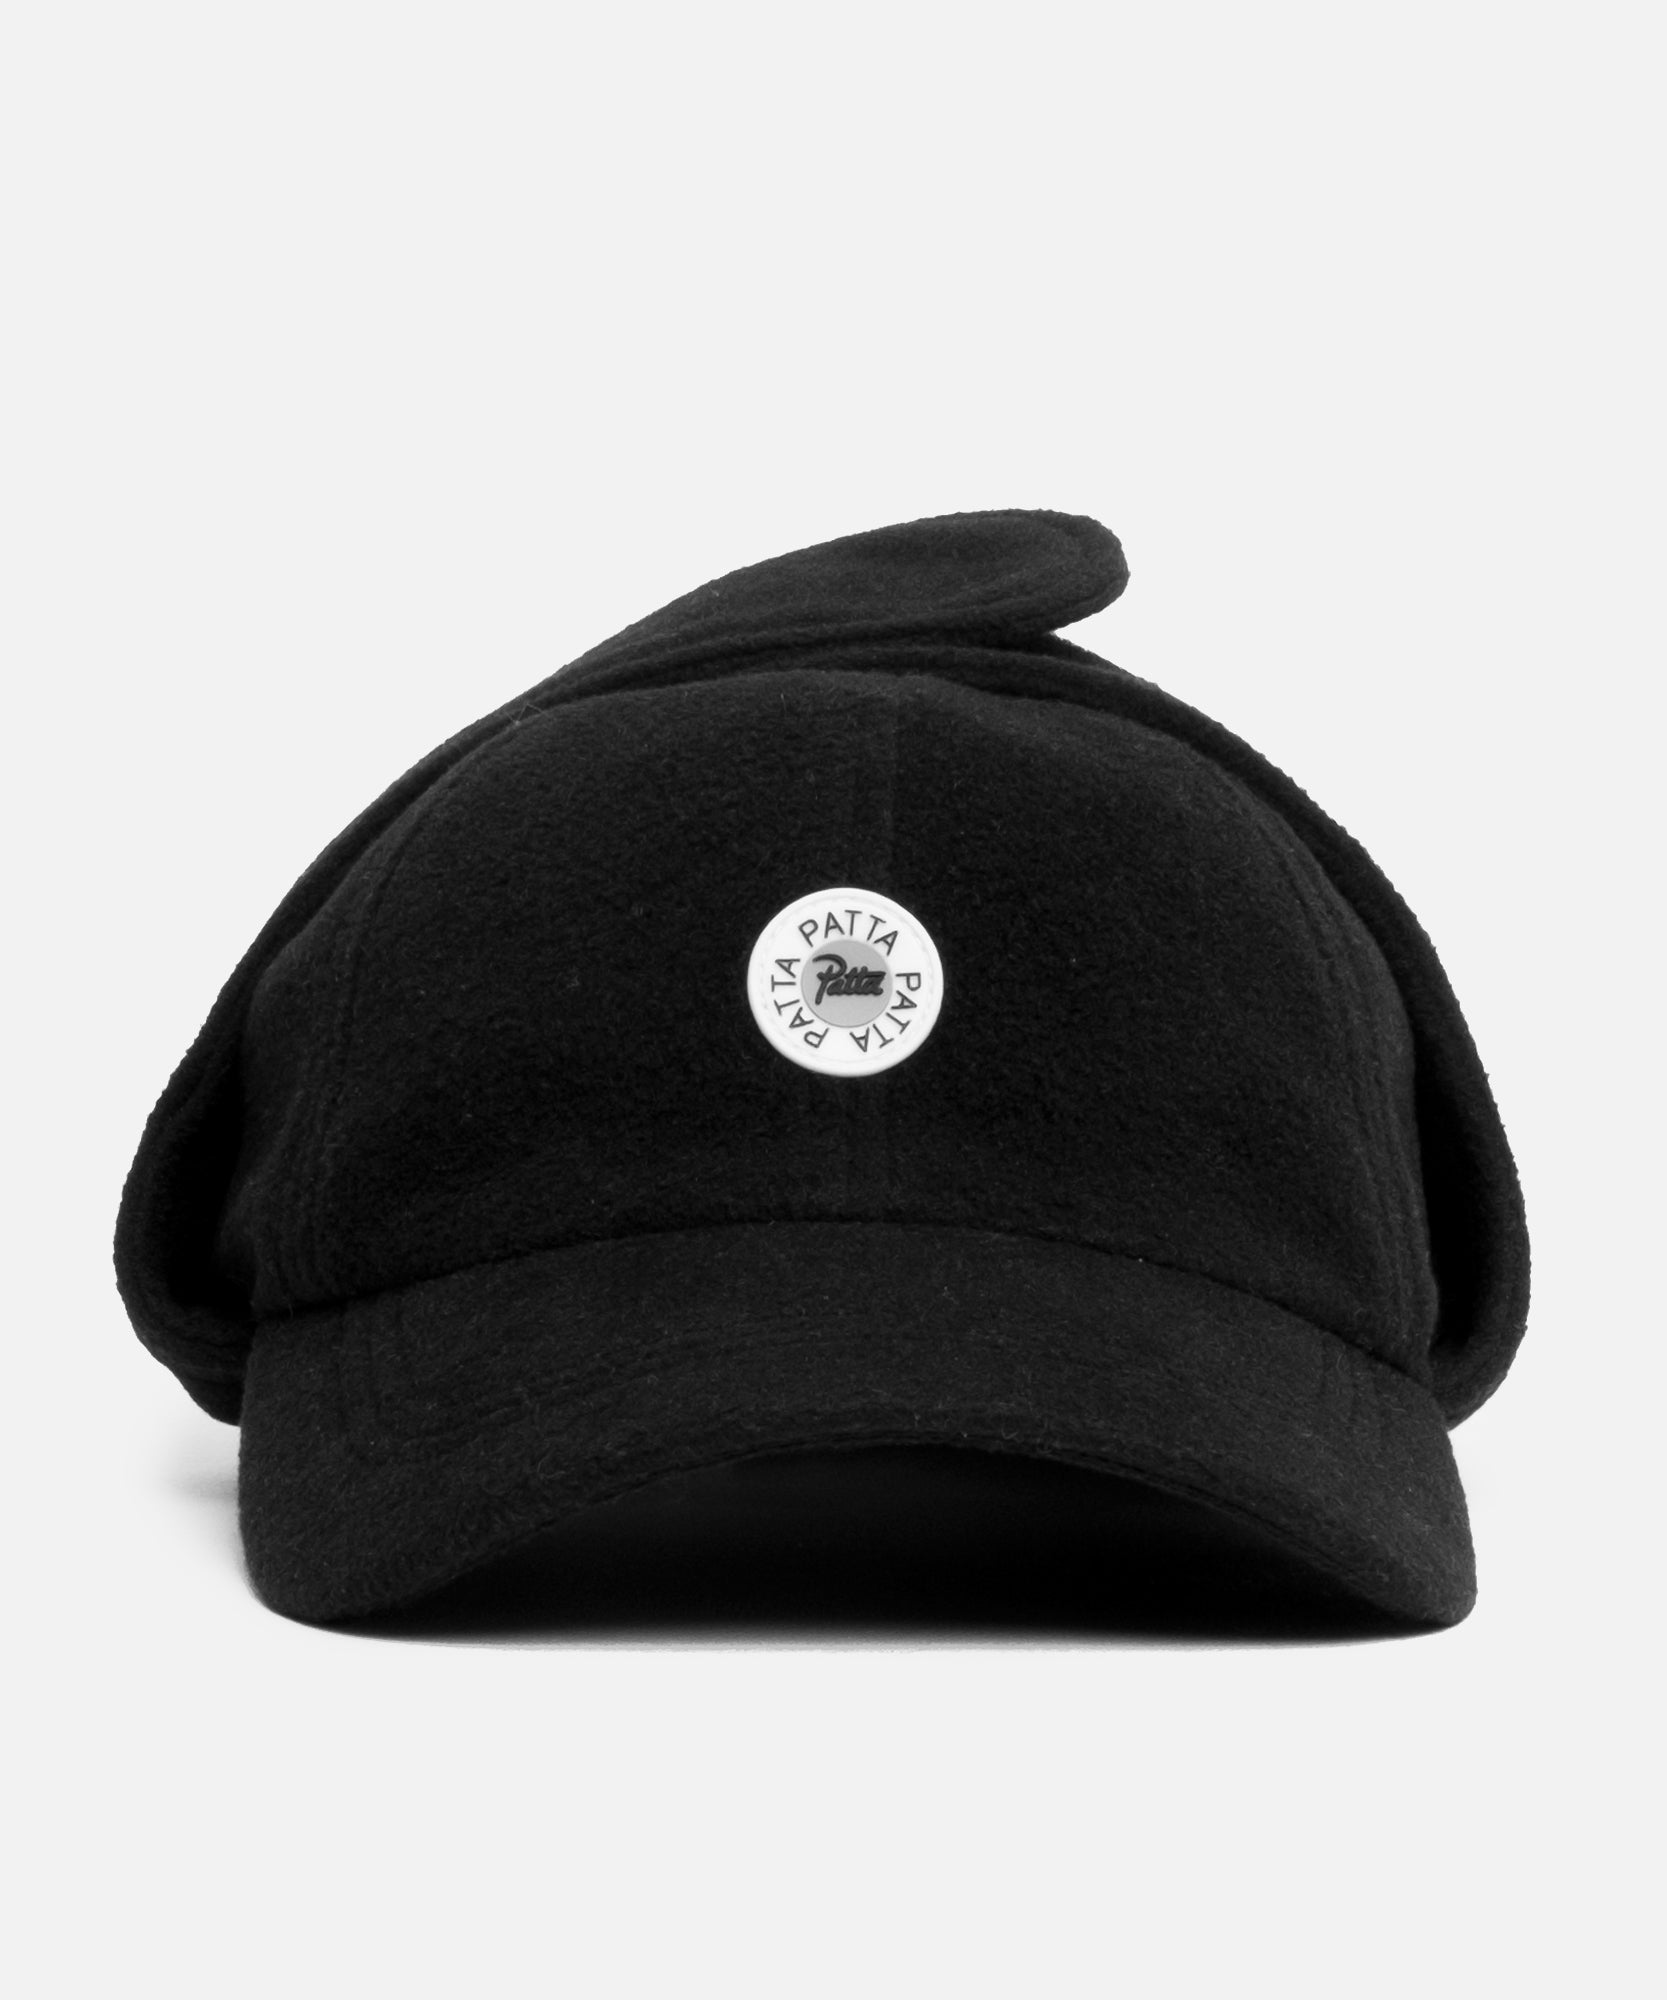 Patta Polartec Sports Flap Cap (Black)